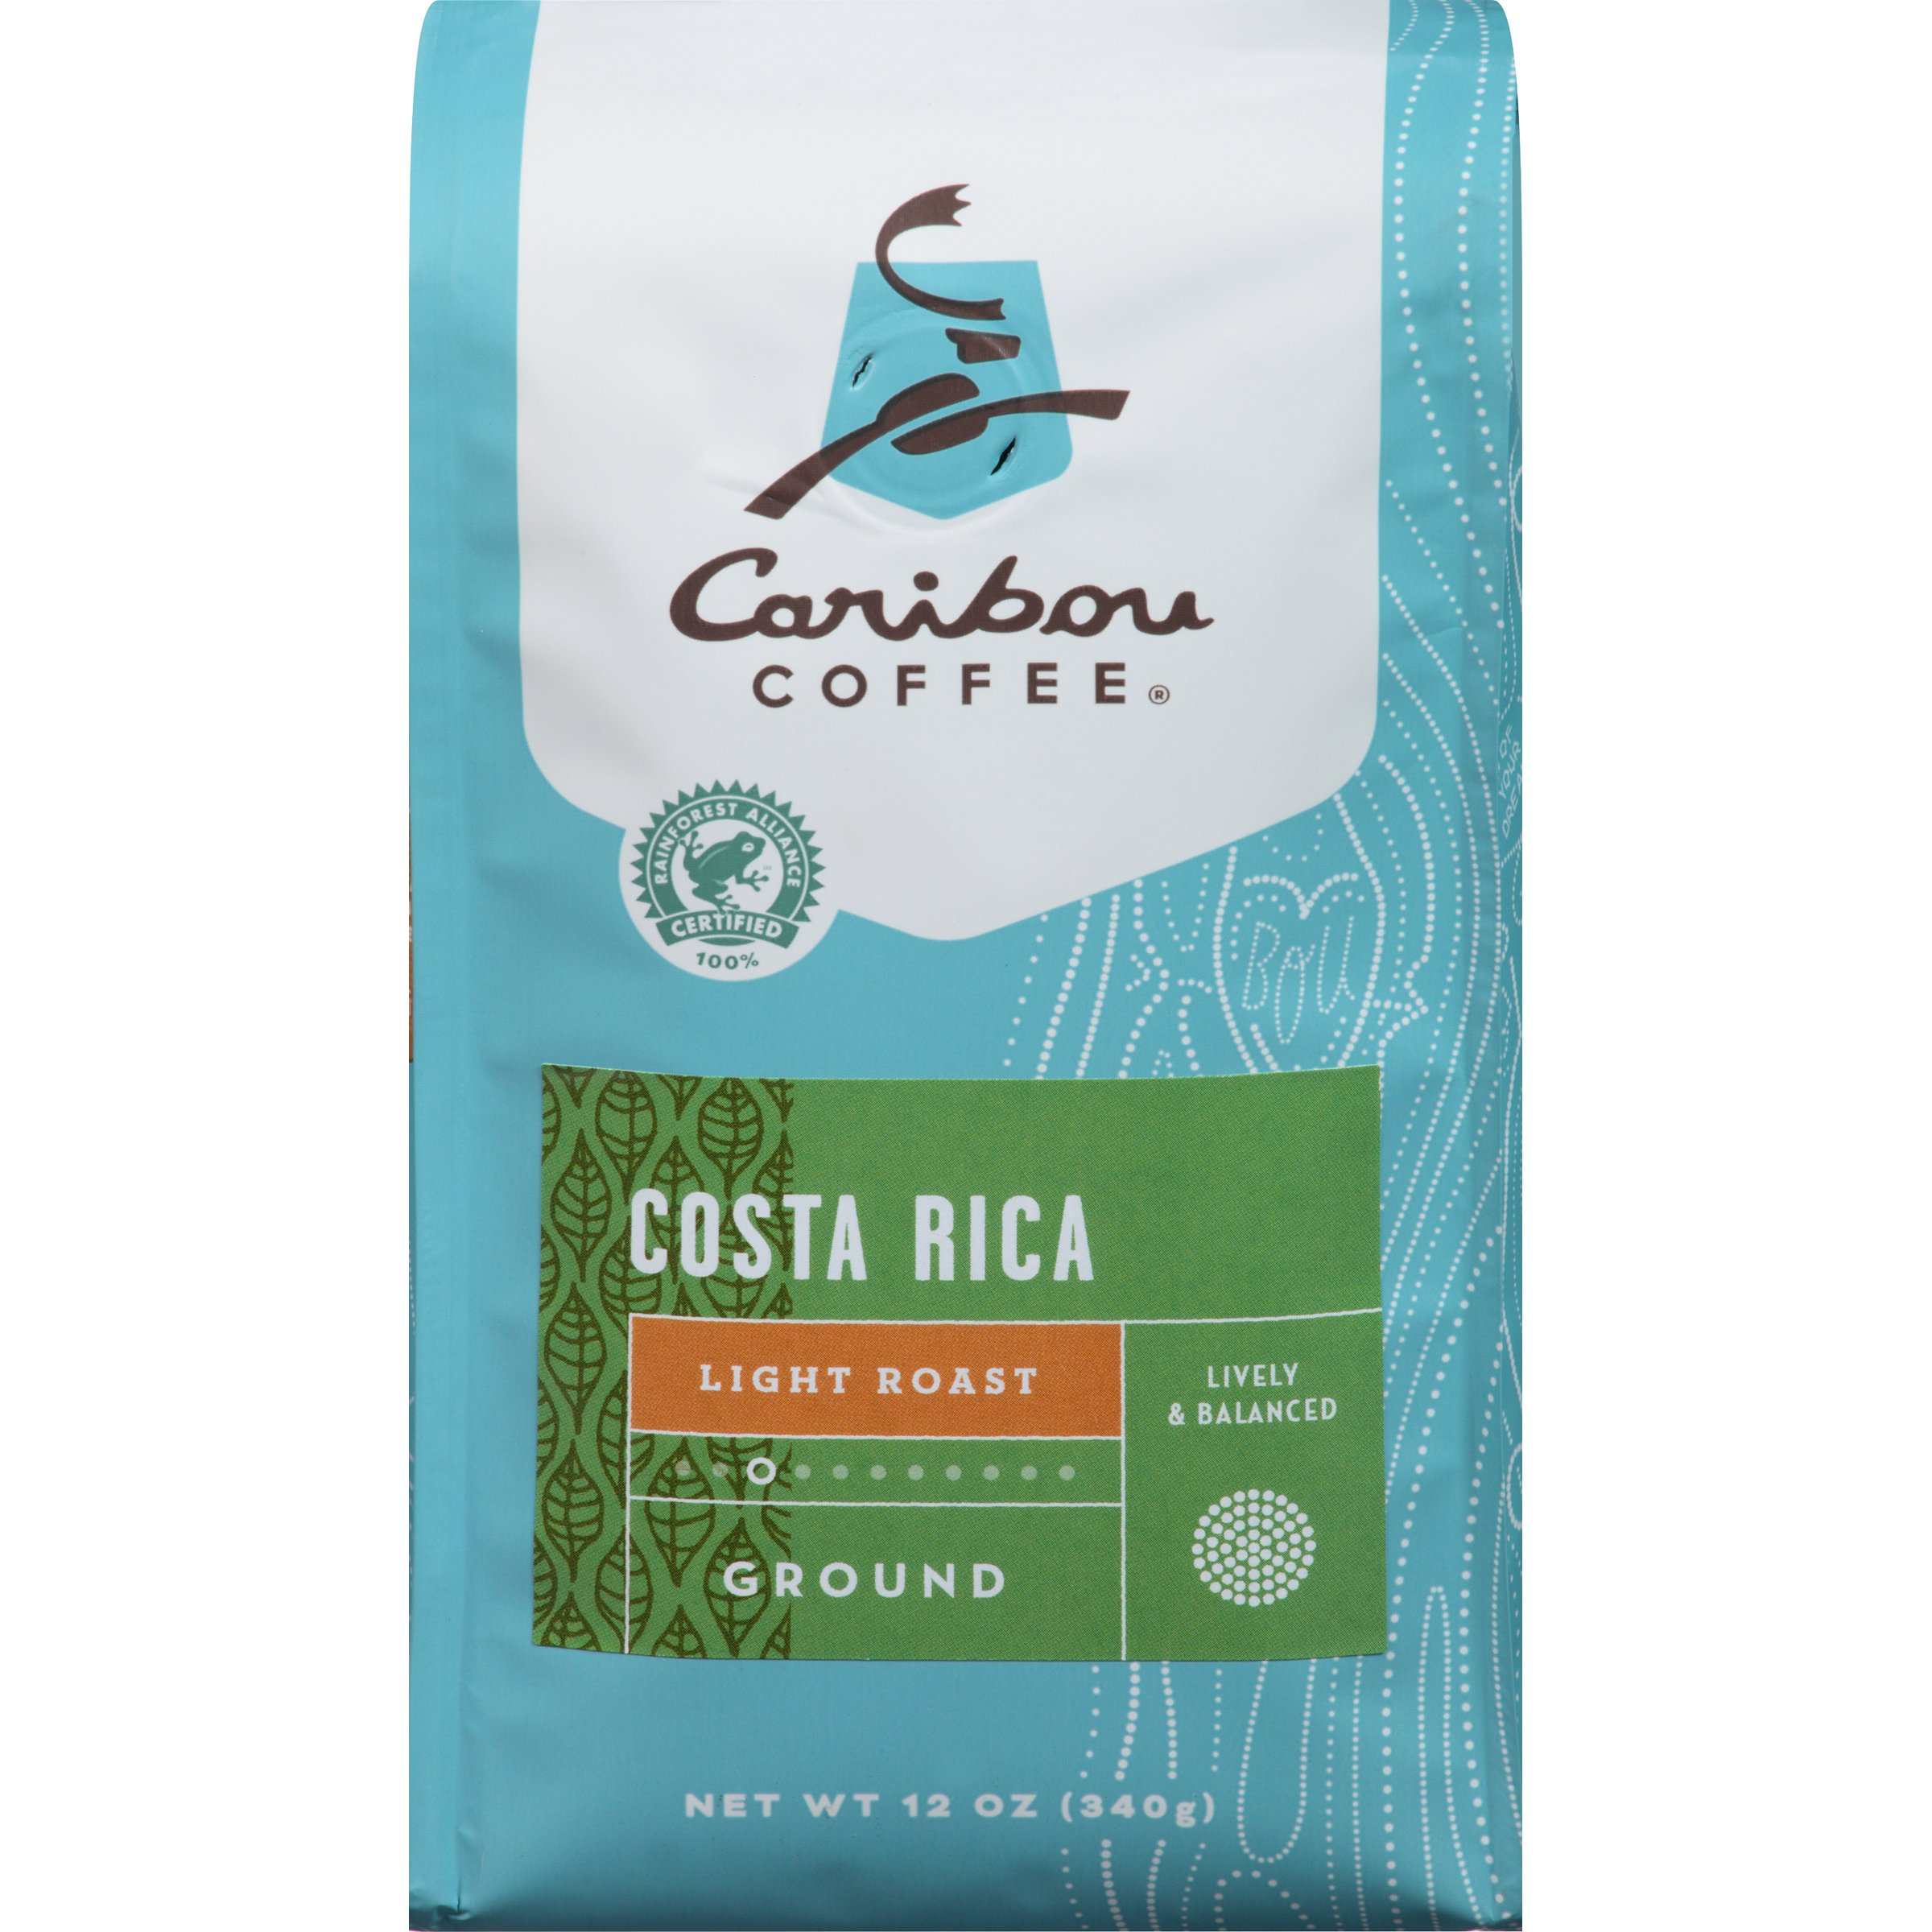 Caribou Coffee, Costa Rica, 12 oz. Bag, A Light Roast, South American Coffee that is Bright & Lively, with A Balanced Body & Smooth Finish, 100% Arabica Coffee Beans; Sustainable Sourcing